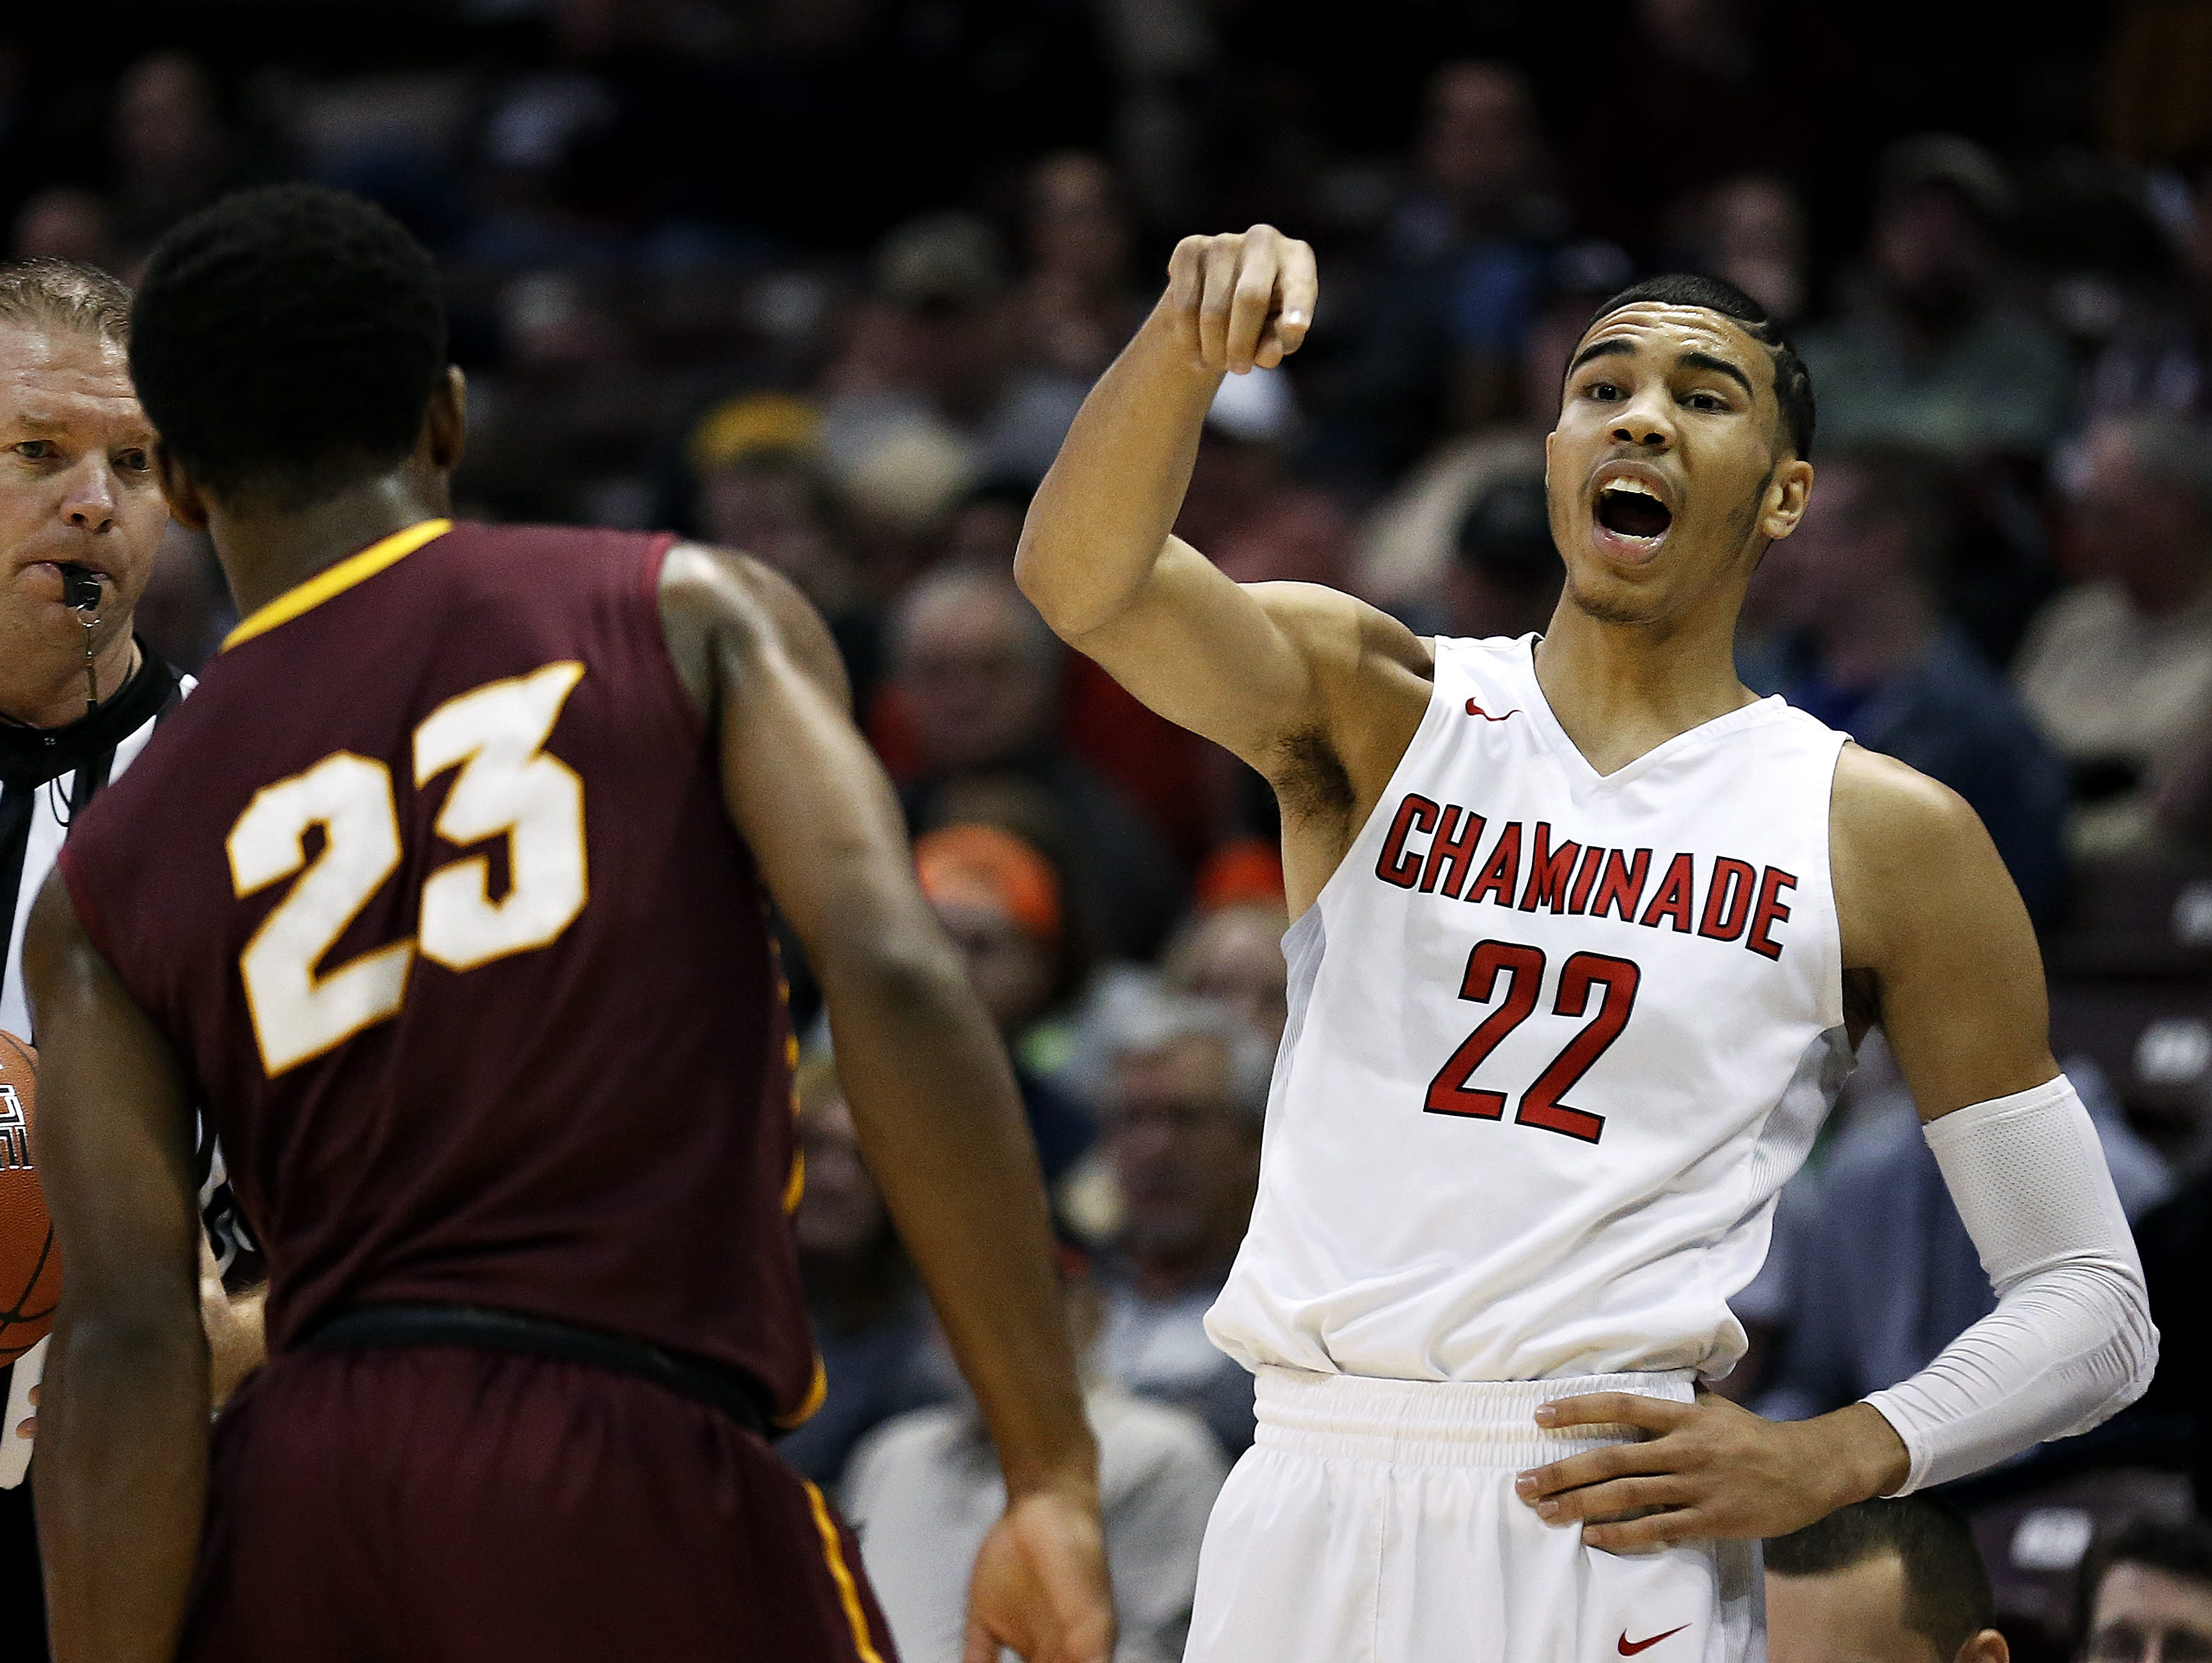 Chaminade College Preparatory School forward Jayson Tatum (22) yells out instructions to his teammates during first-quarter action of a 2016 Tournament of Champions game against Christ The King High School at JQH Arena.